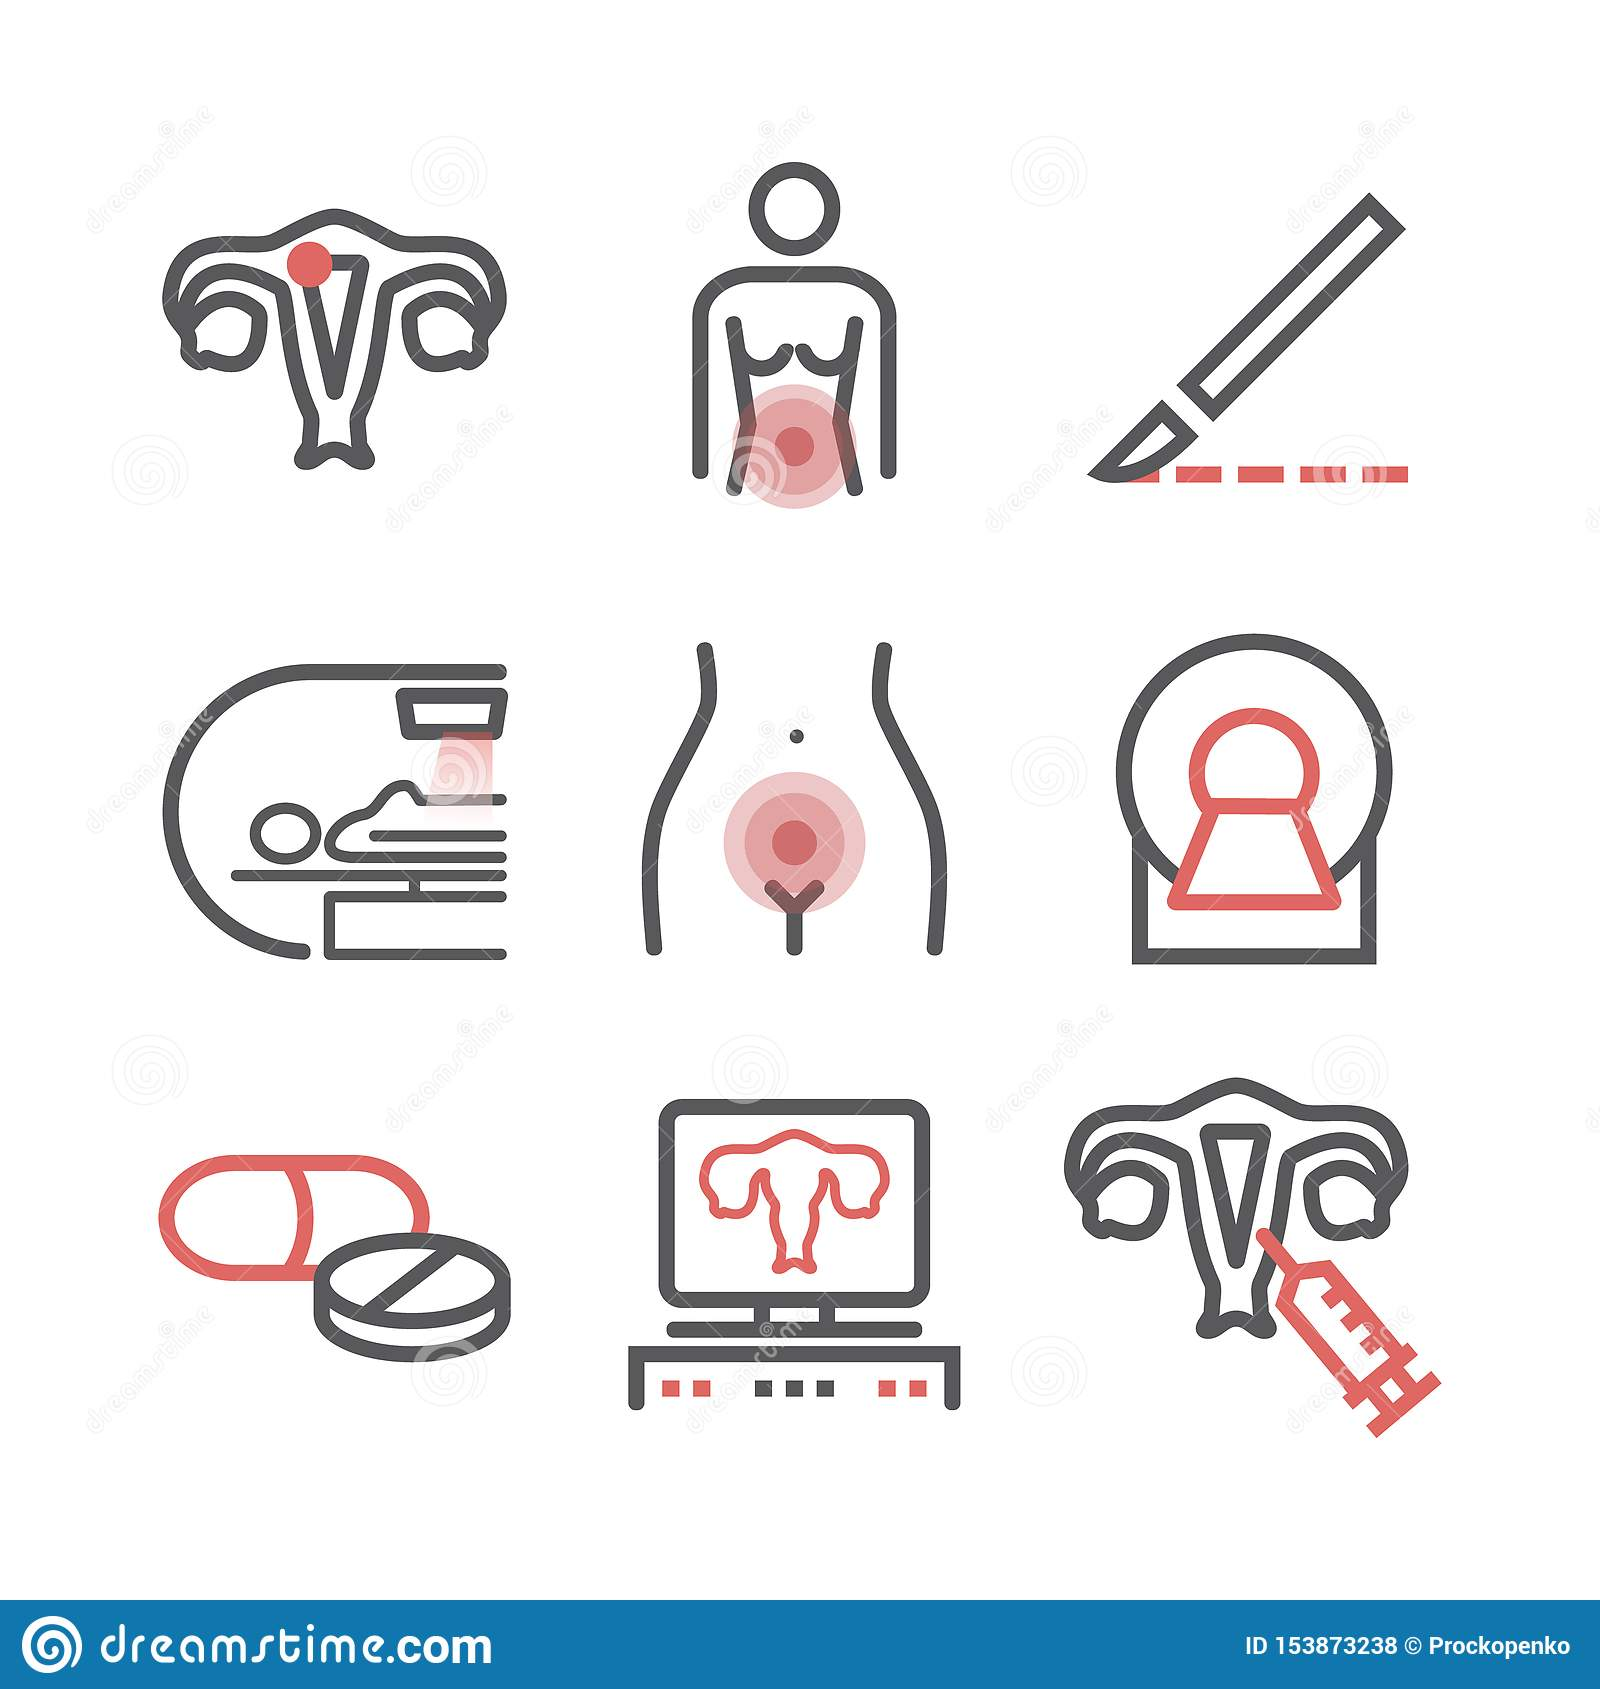 Uterine cancer. Symptoms, Causes, Treatment. Line icons set. Vector signs for web graphics.